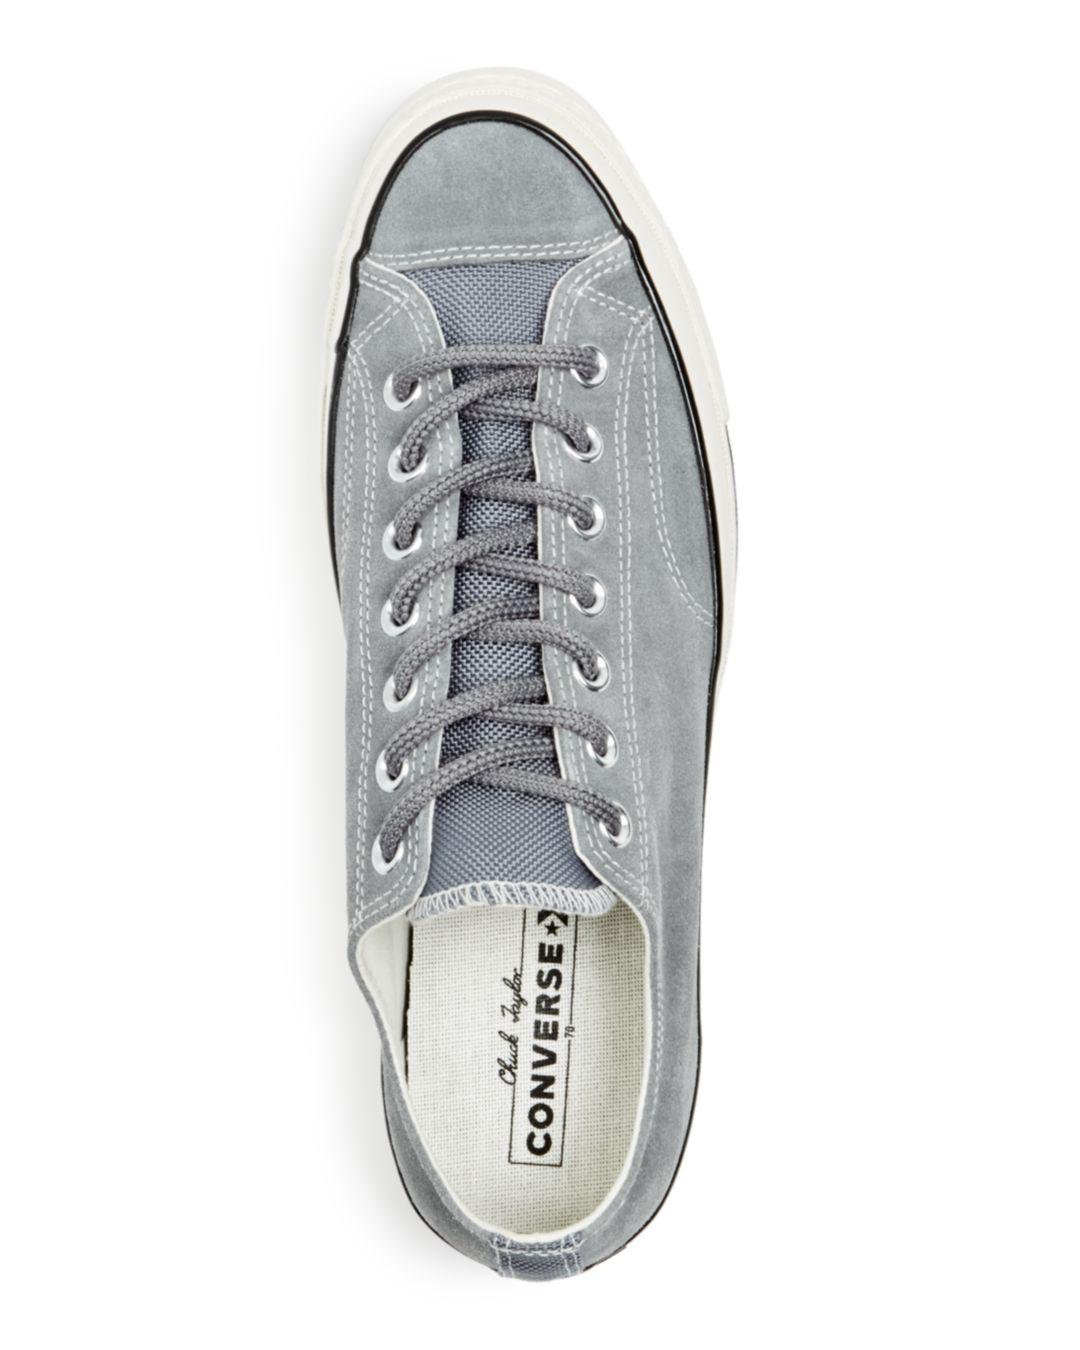 e5711d1248fb Converse Men s Chuck Taylor All Star 70 Suede Lace-up Sneakers in Gray for  Men - Lyst